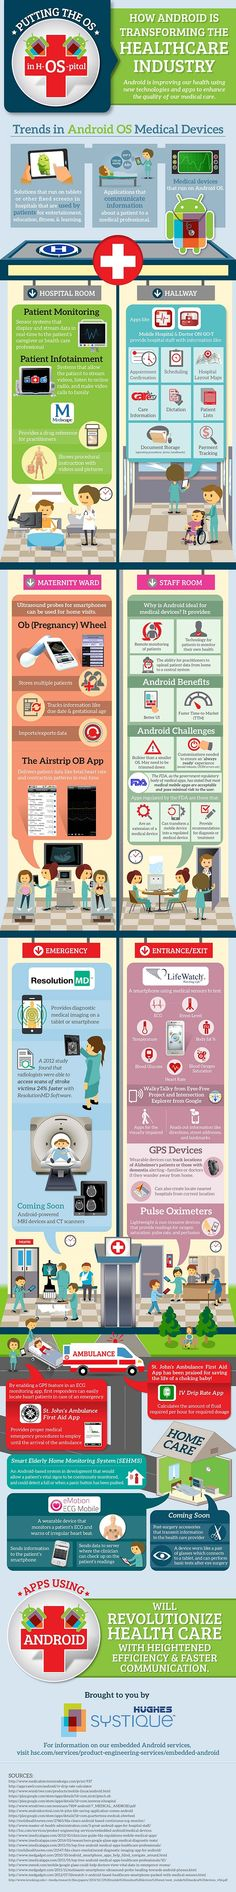 342 best Digital Health images on Pinterest | Health, Day care and ...